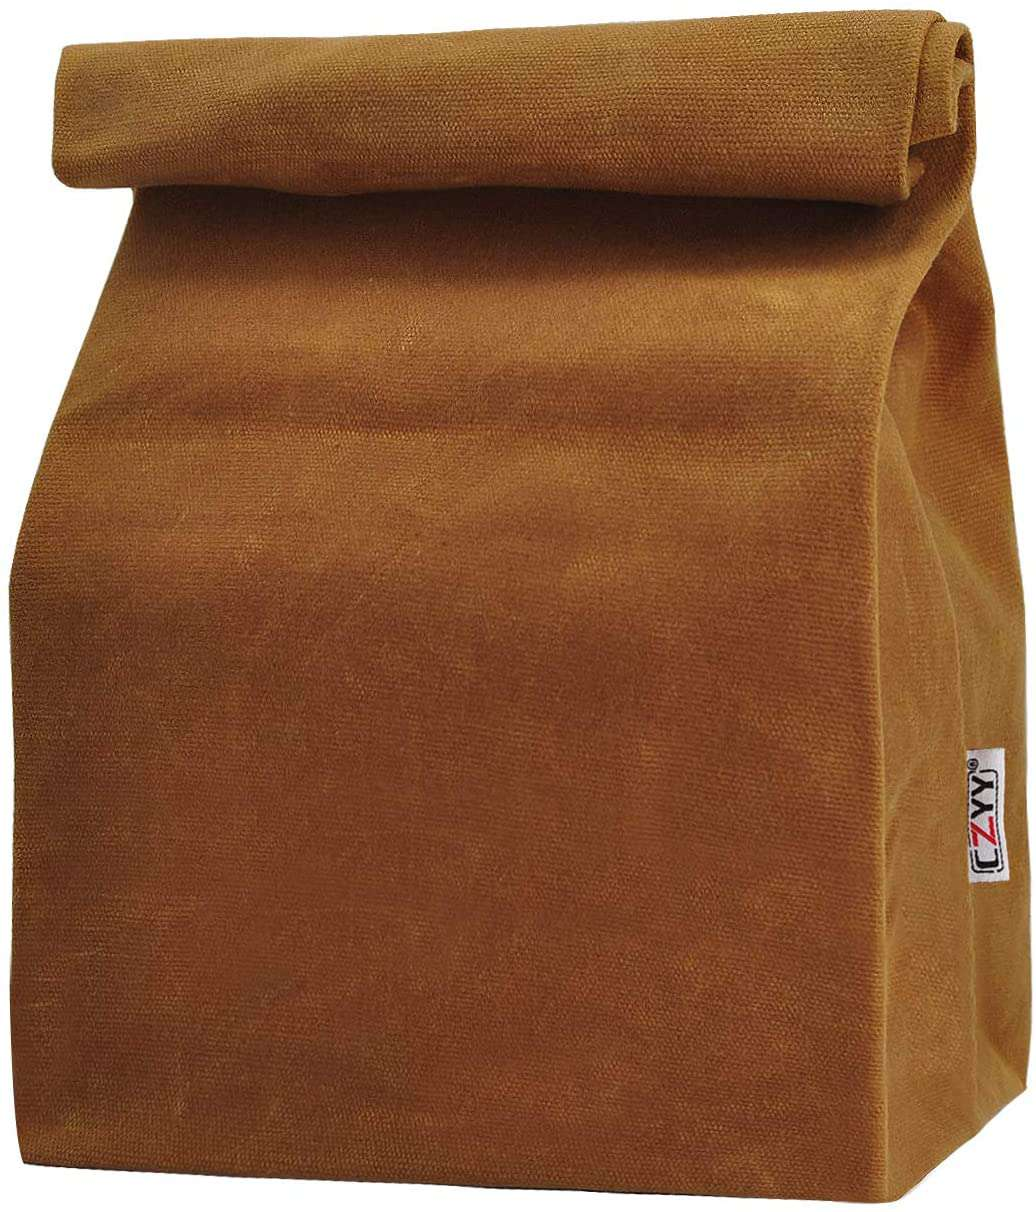 Waxed Canvas Lunch Bags Brown Paper Bag Styled